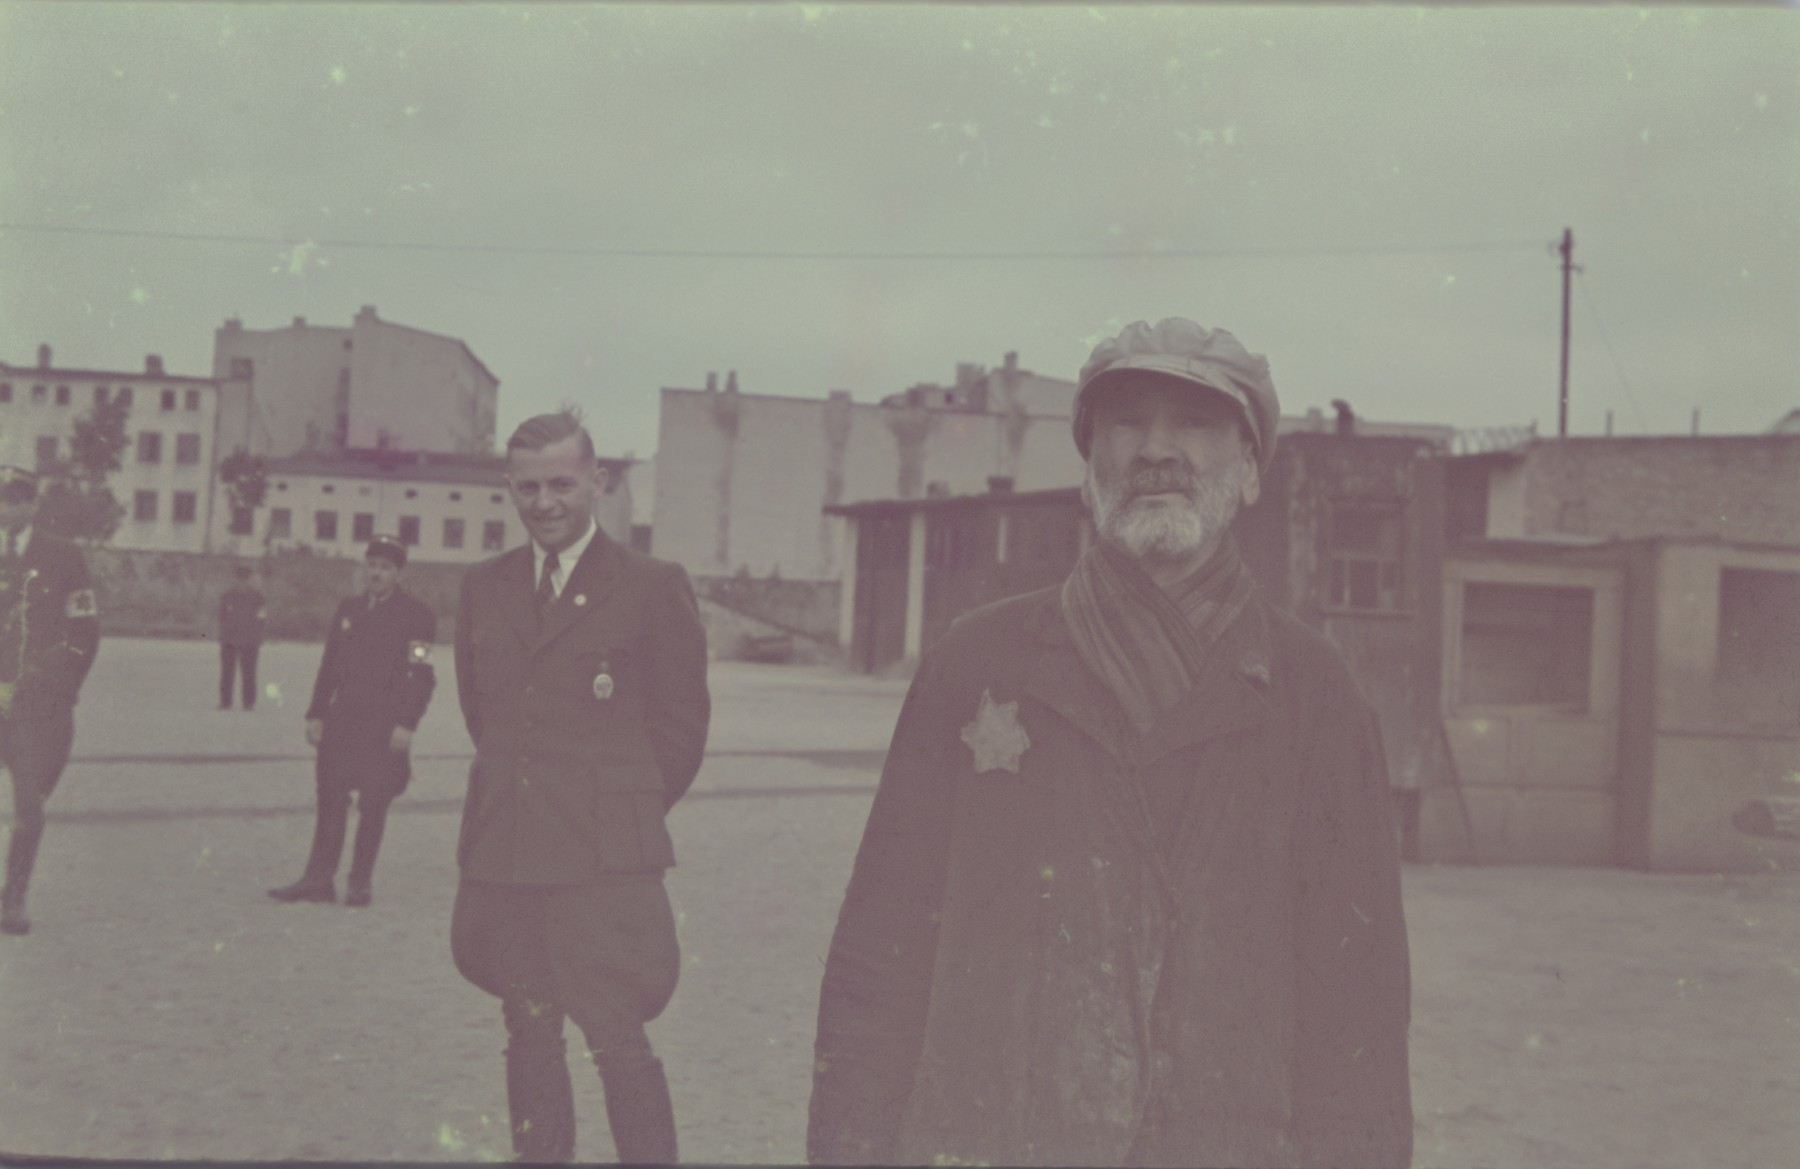 Hans Biebow, German head of the Lodz ghetto administration, observing an elderly and destitute Jew in the ghetto.